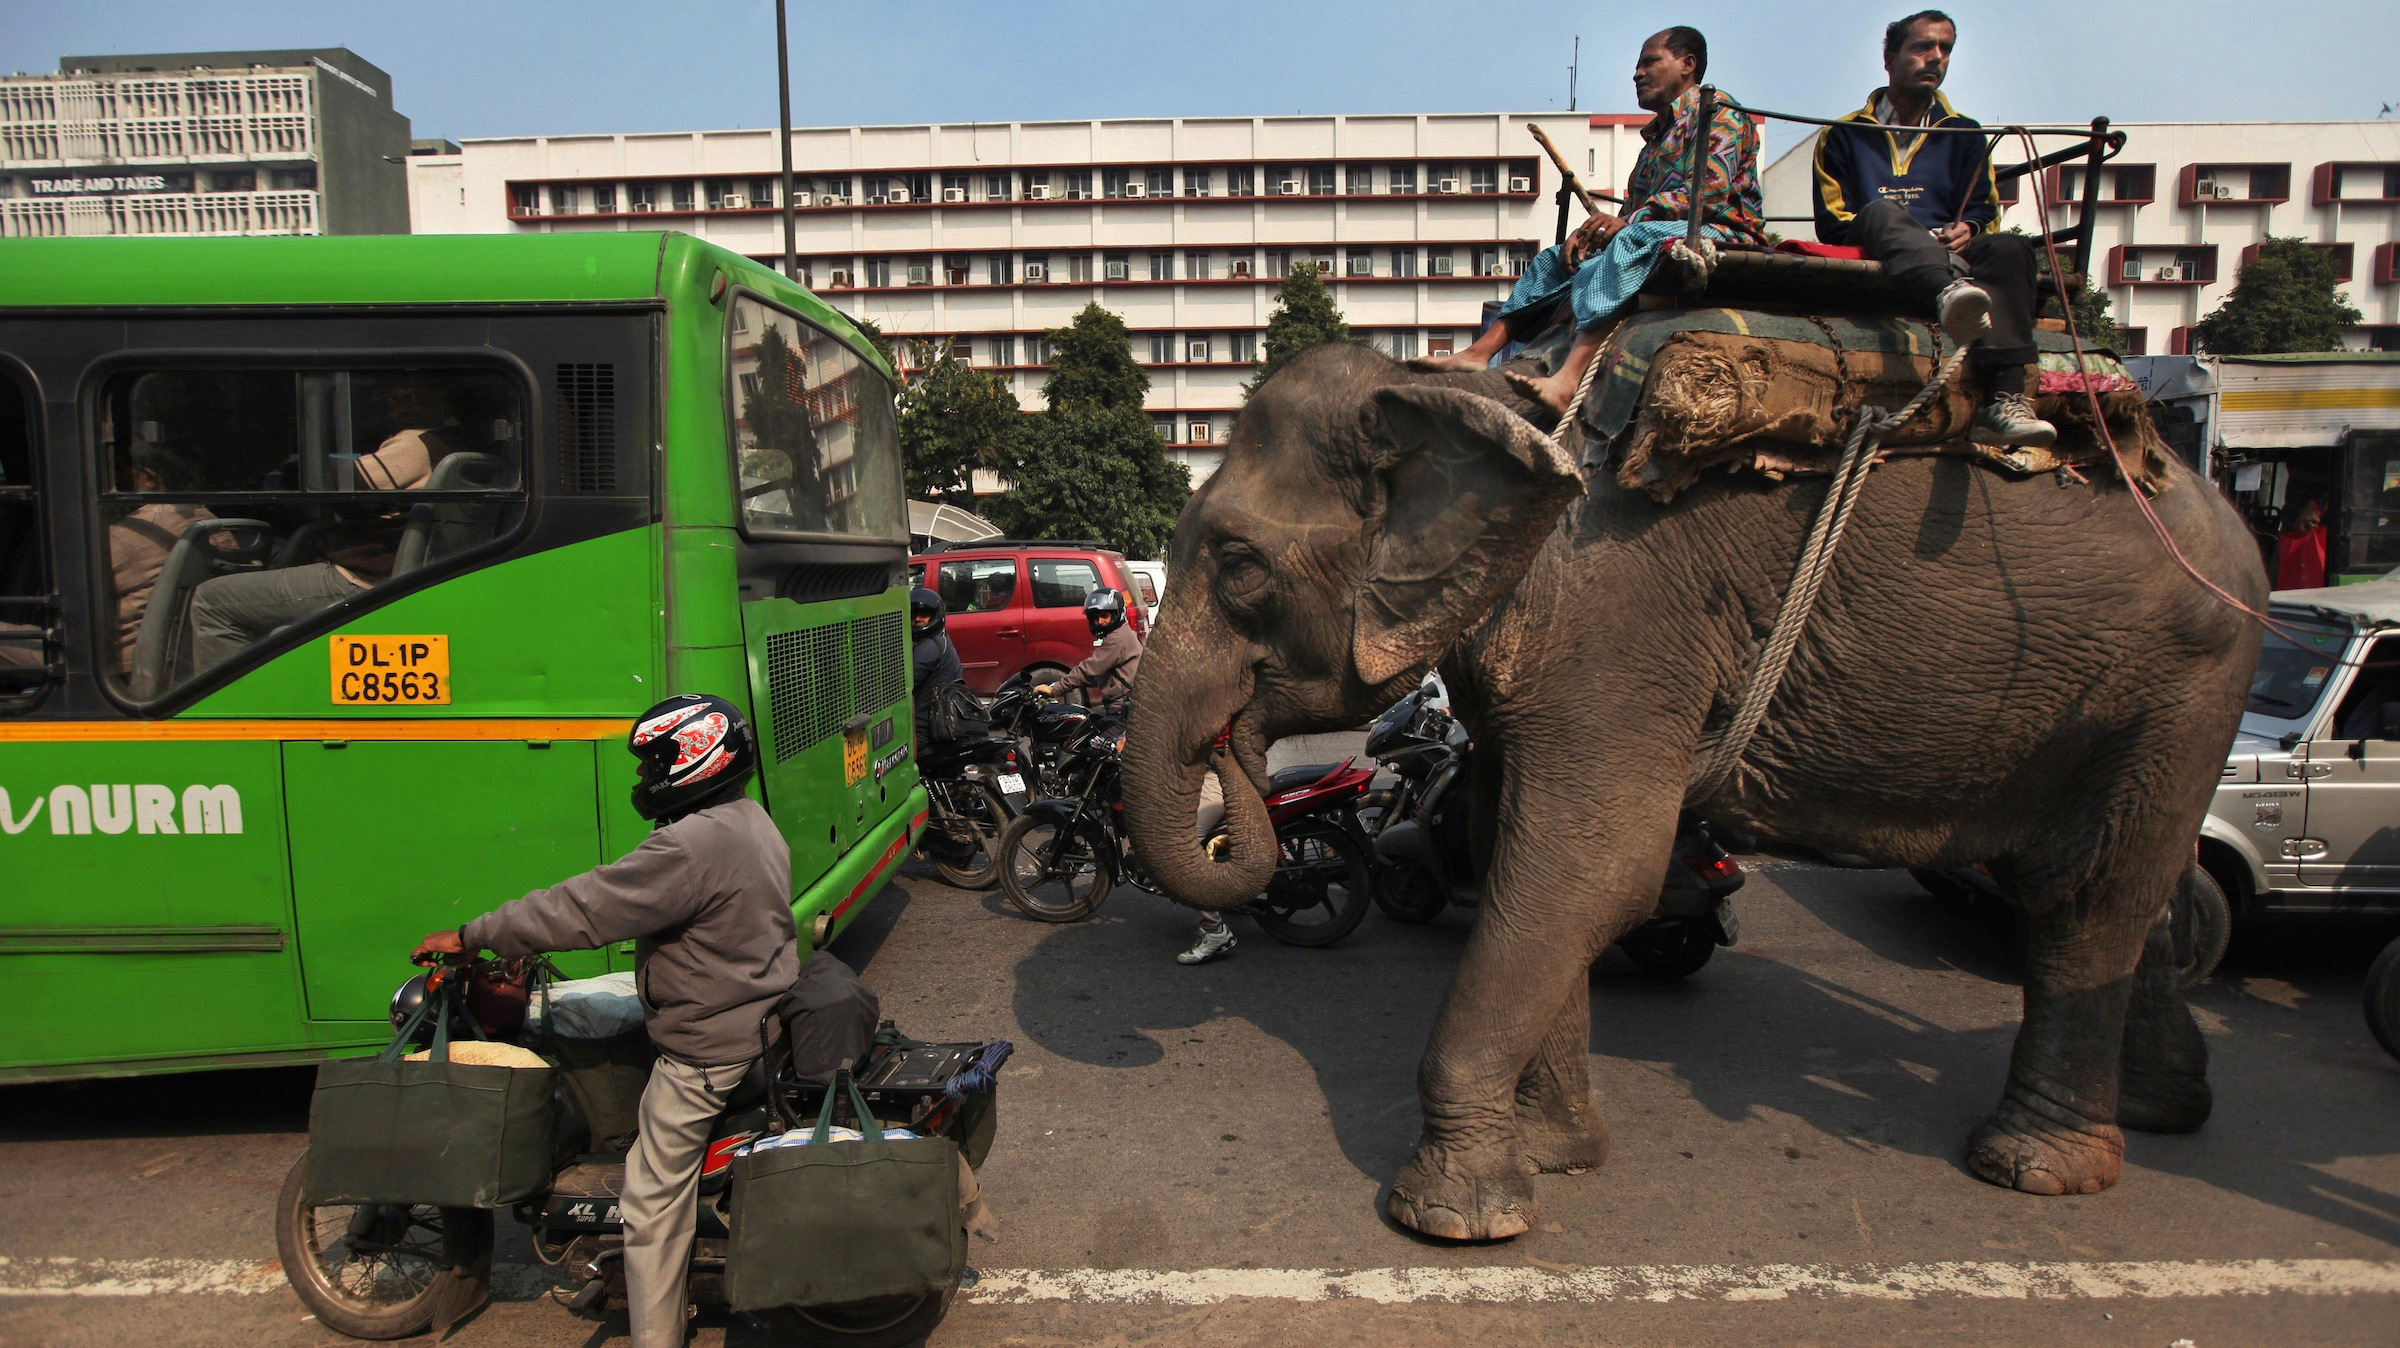 A domesticated elephant halts at a traffic intersection in New Delhi, India, Wednesday, Feb. 20, 2013. There are an estimated 28,000 wild elephants in India, along with thousands of domesticated ones that do everything from performing in shows to carrying heavy loads in the country's big cities. (AP Photo/Altaf Qadri)